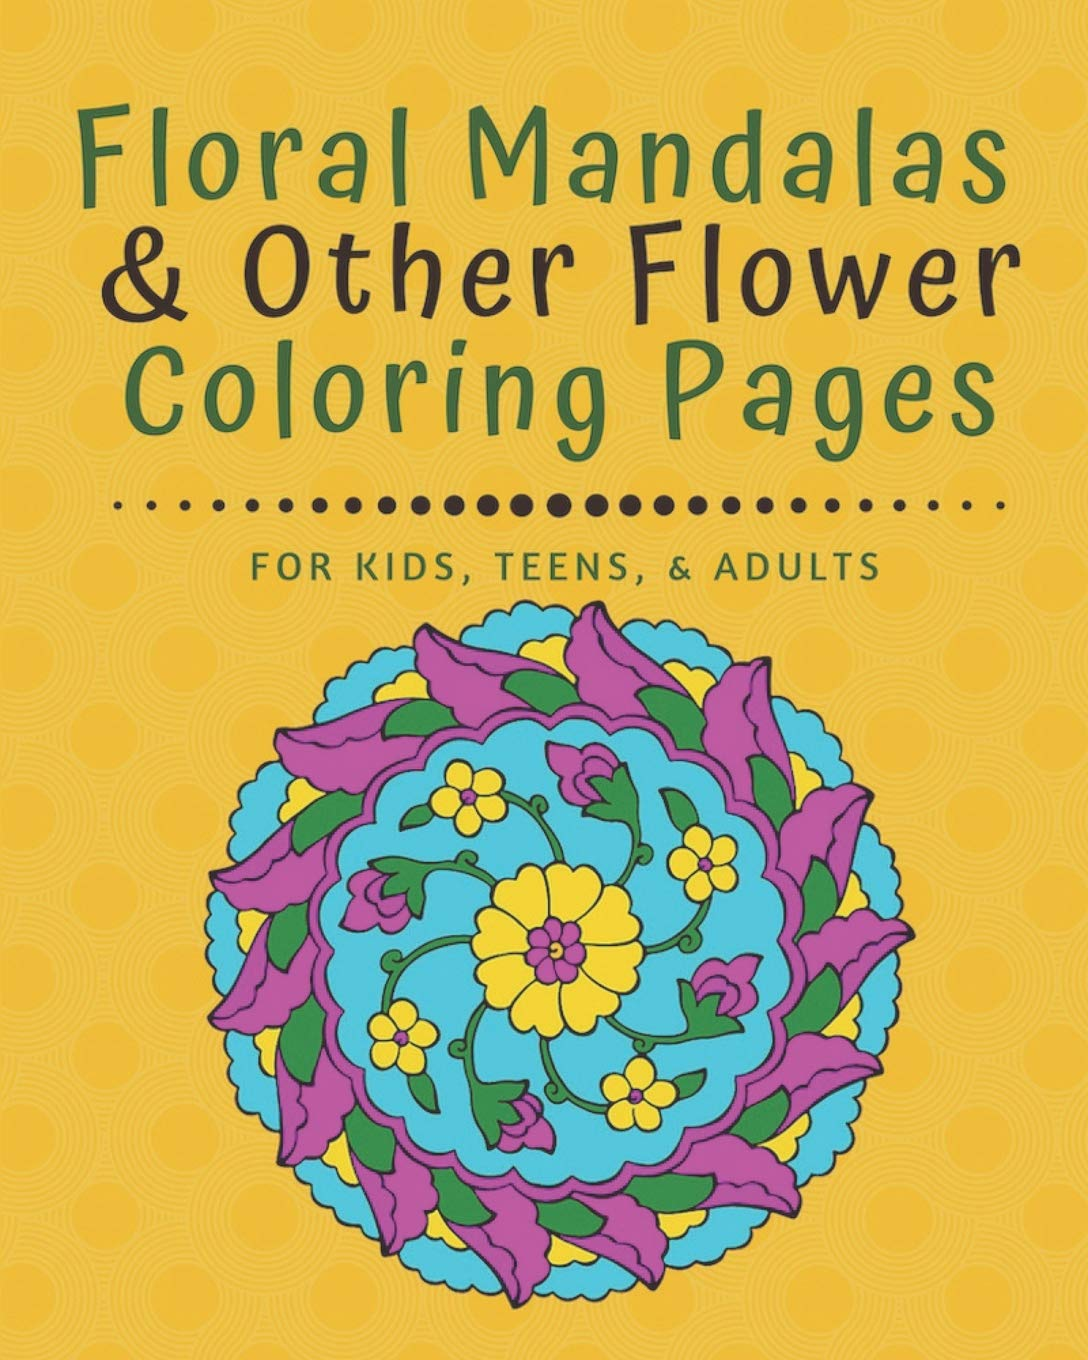 Floral Mandalas Other Flower Coloring Pages For Kids Teens